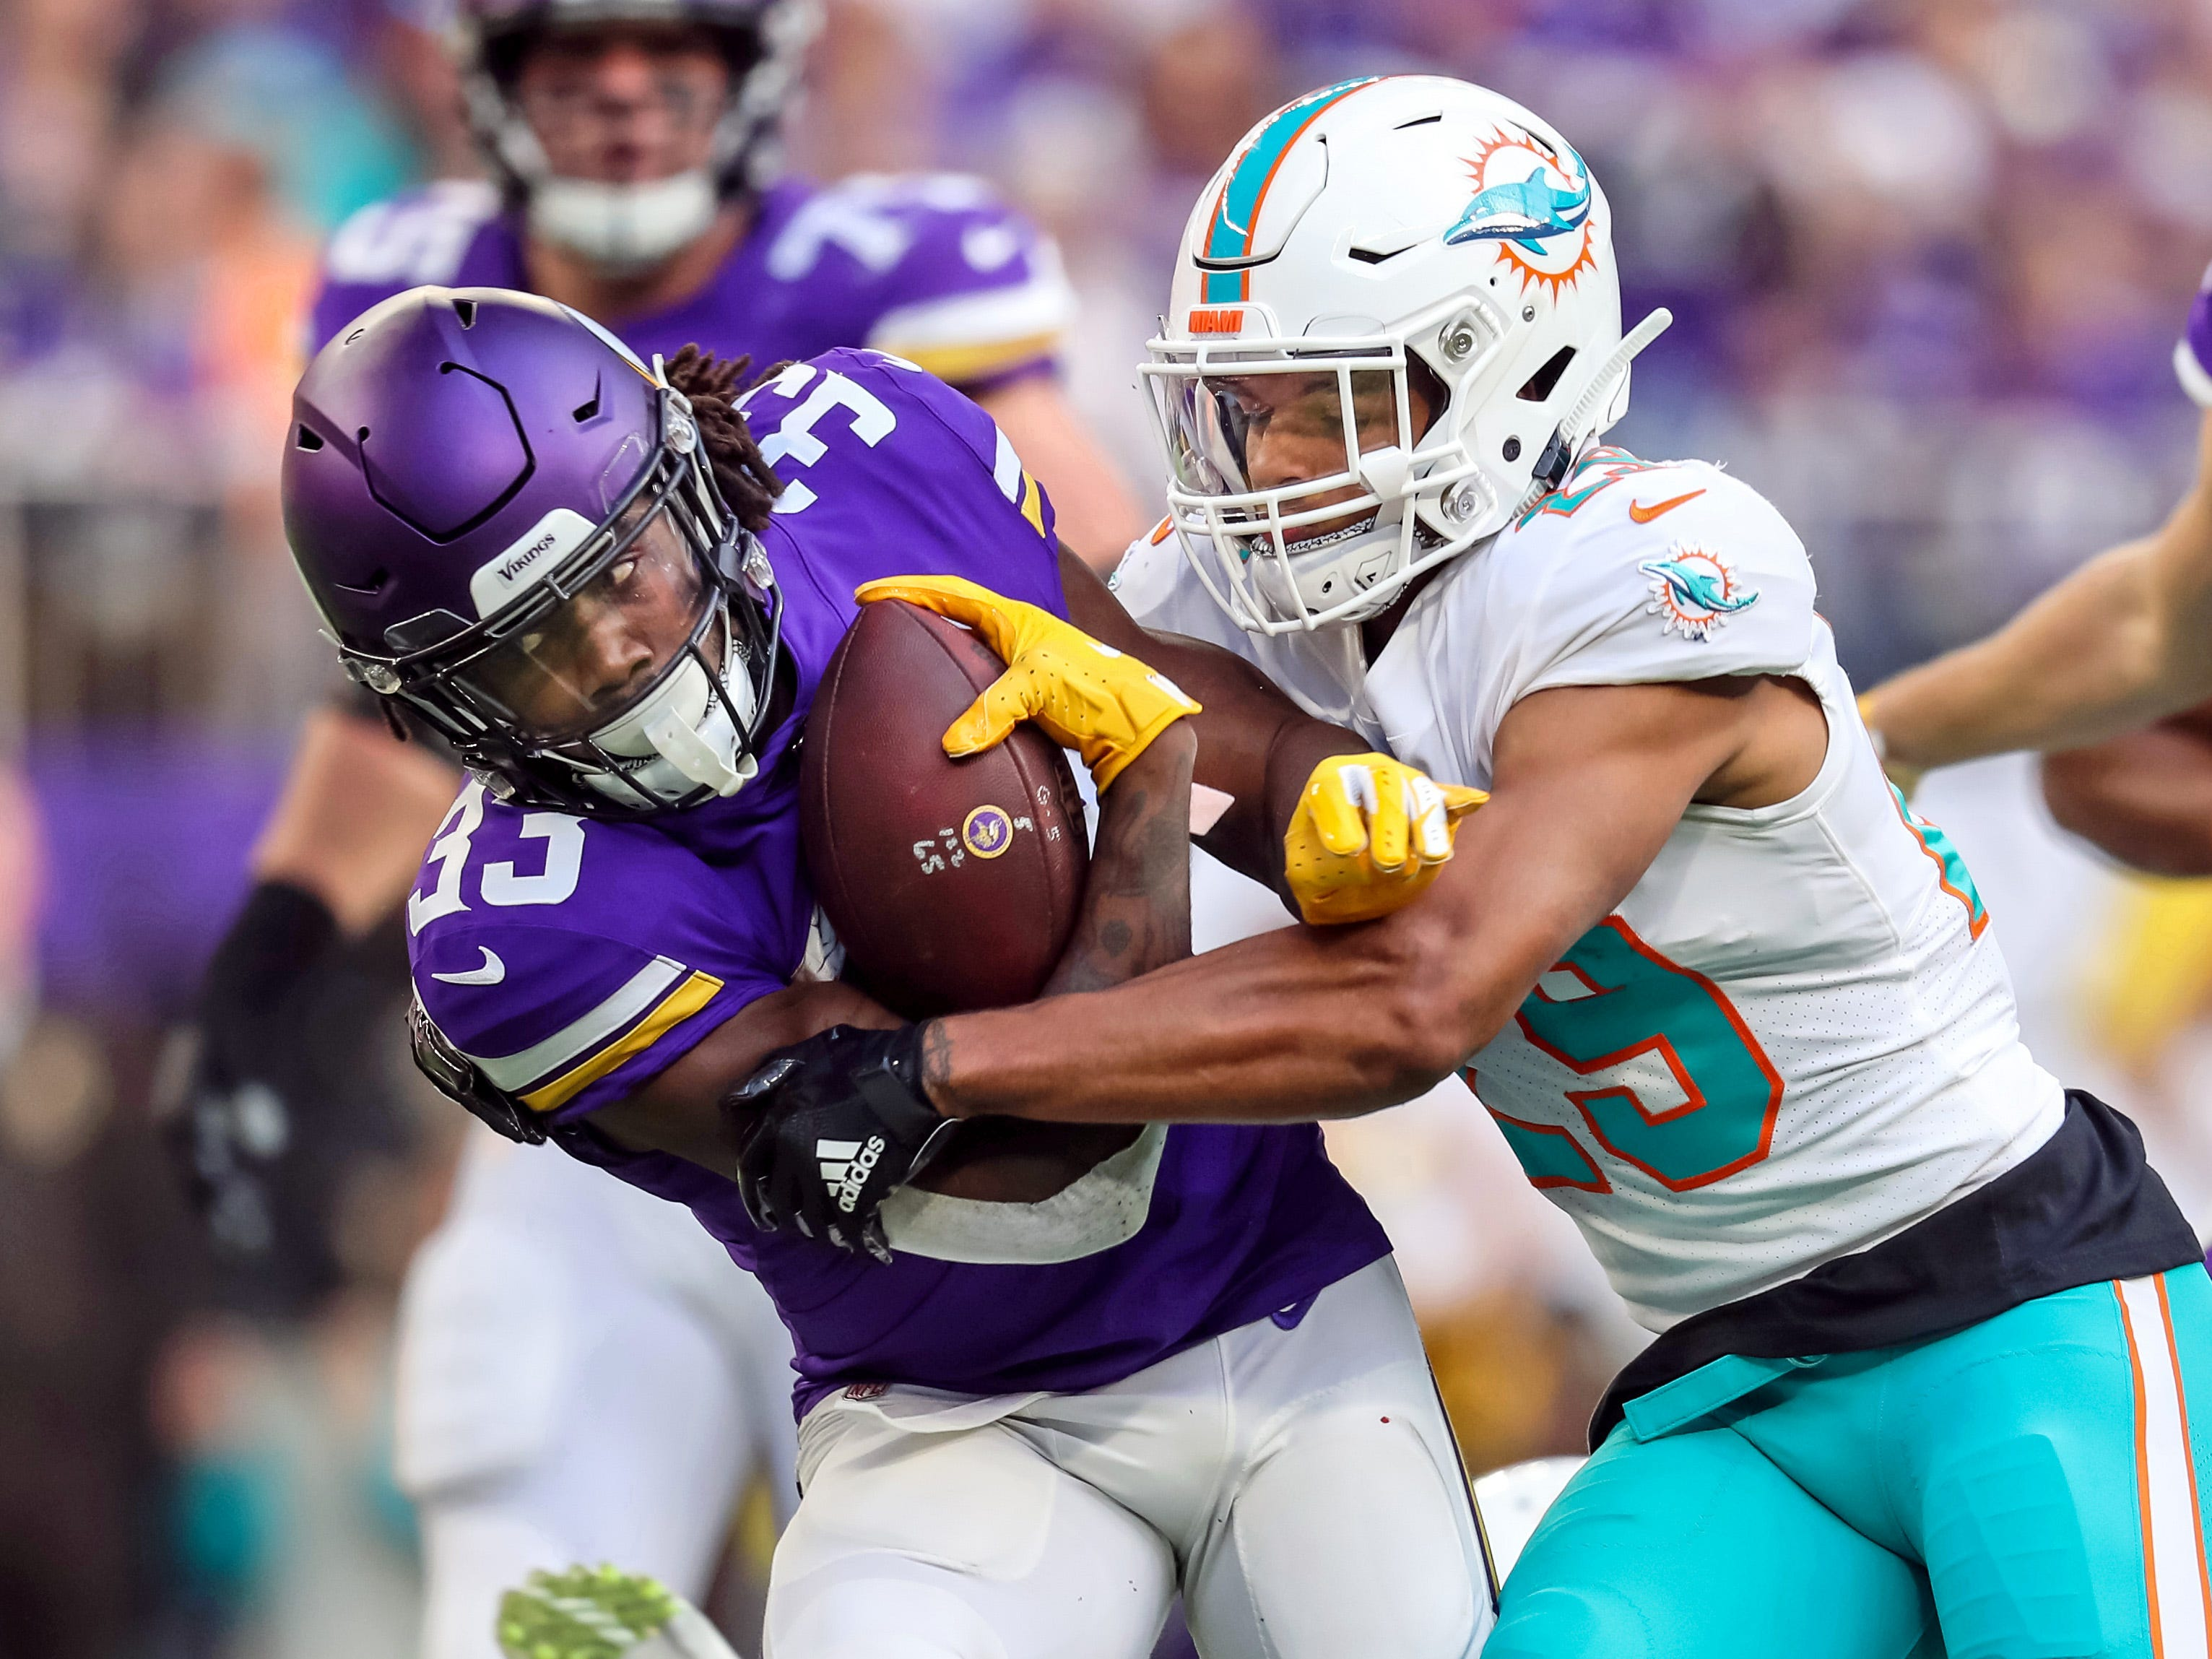 Vikings running back Dalvin Cook (33) is tackled by Dolphins safety Minkah Fitzpatrick (29).